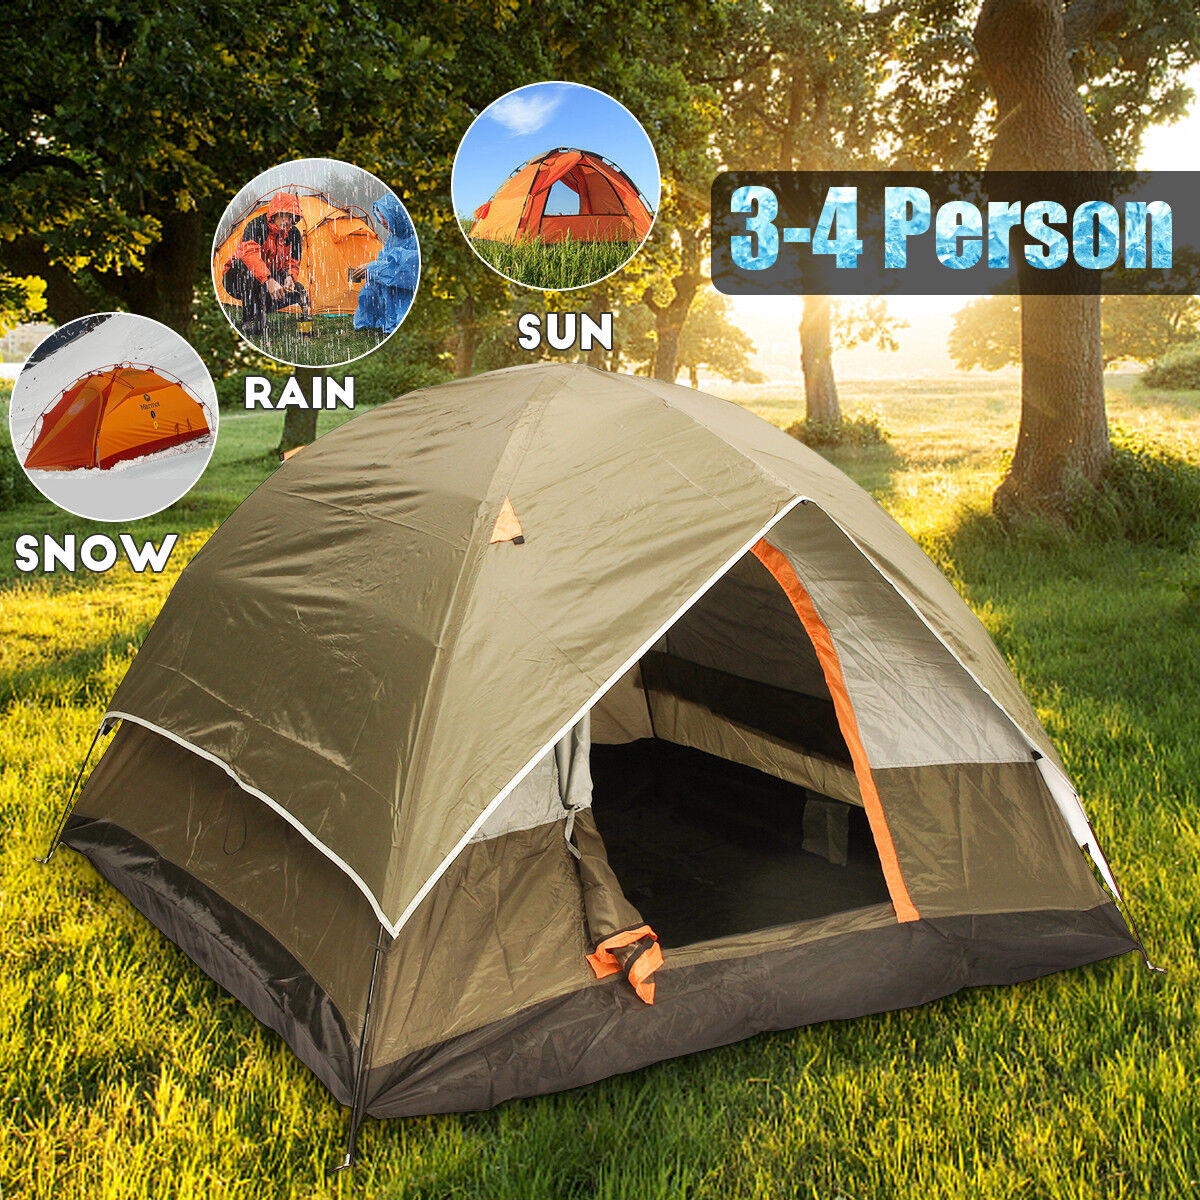 210T Trip 4 Person Camping Tent Double-layer Waterproof Family Outdoor Hiking